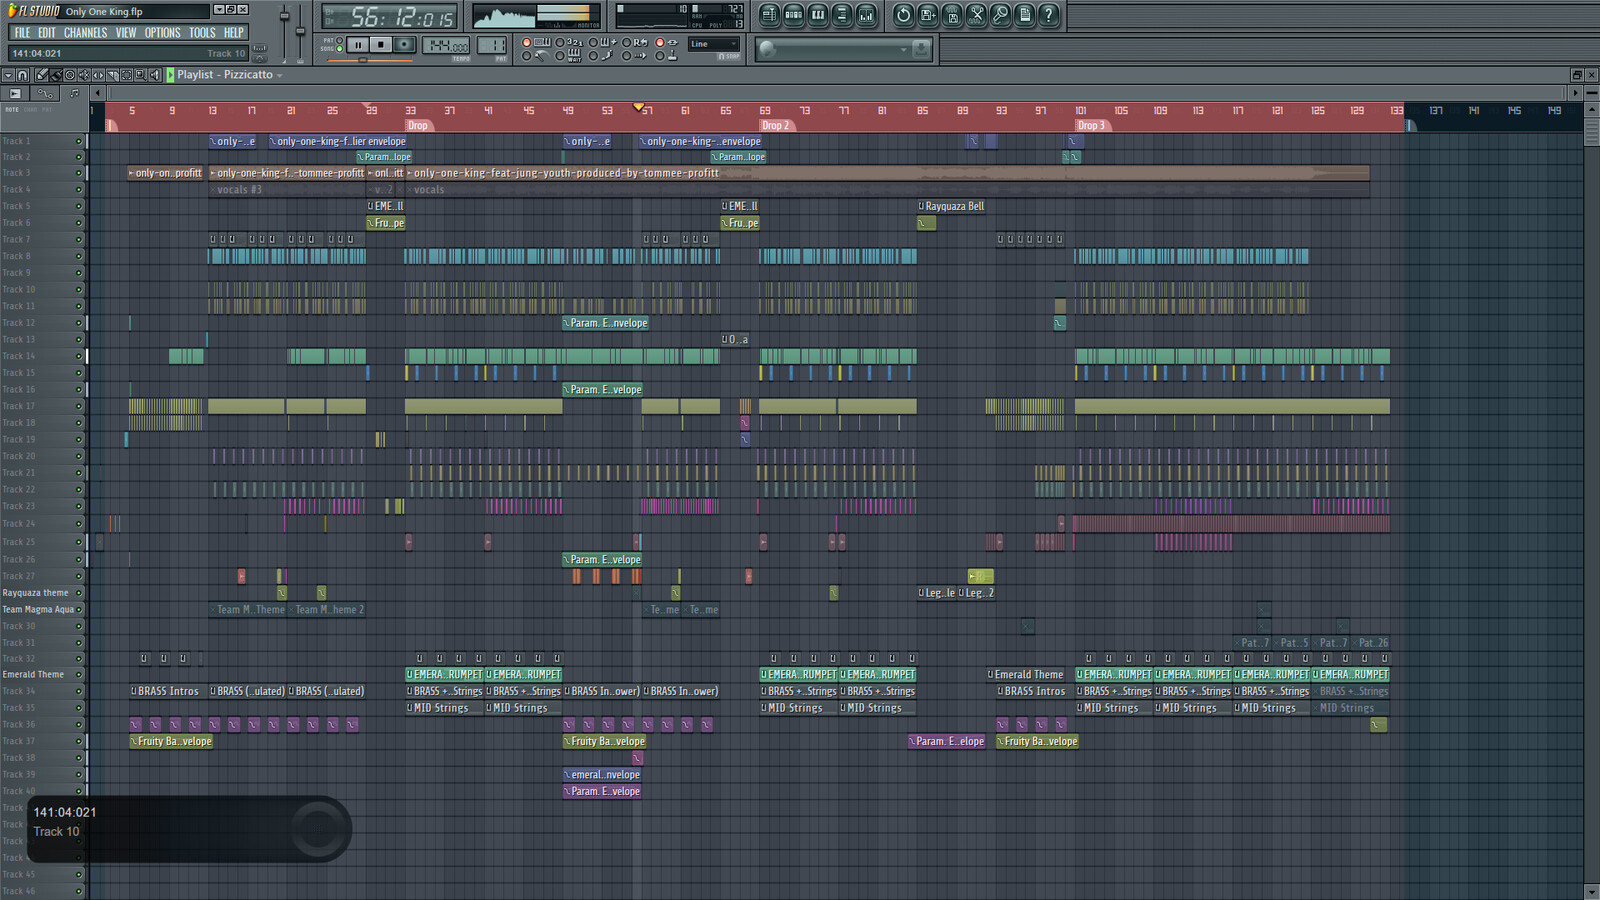 Only One Pokemon King remix - FL Studio Project screenshot